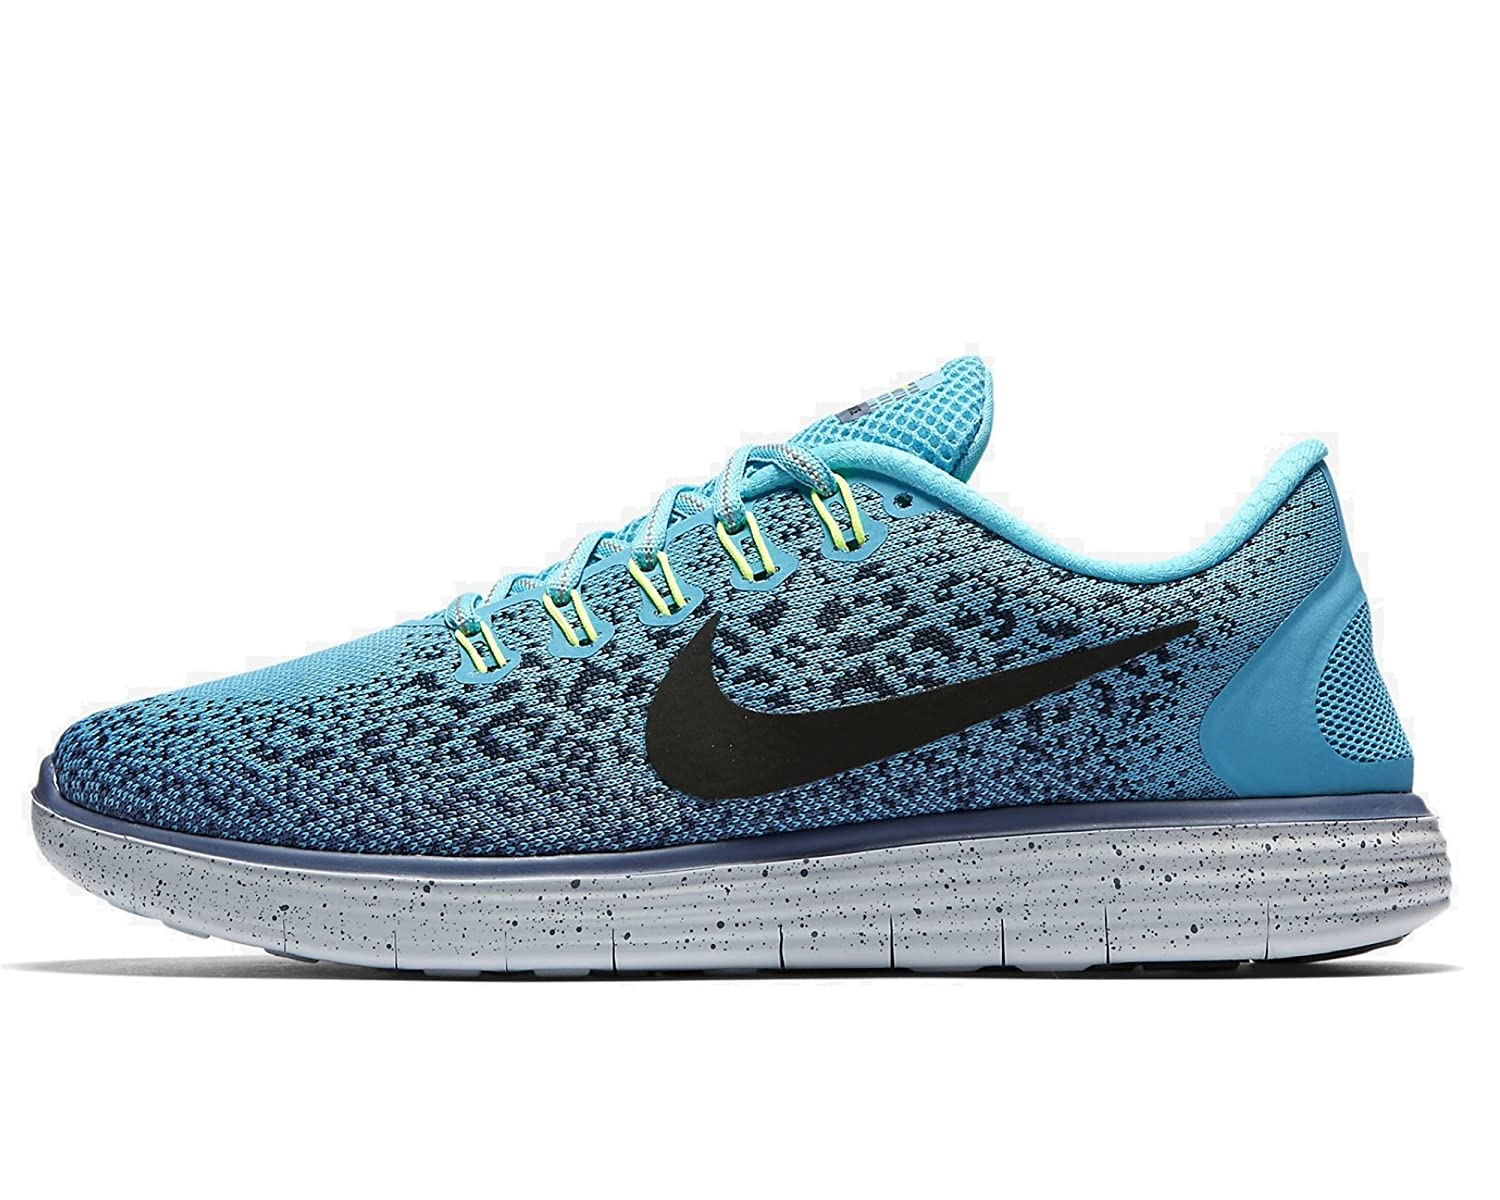 brand new 58e0a ebfd7 NIKE Womens Free RN Distance Shield Running Shoes 849661 400 (4.5 UK)  Amazon.co.uk Shoes  Bags